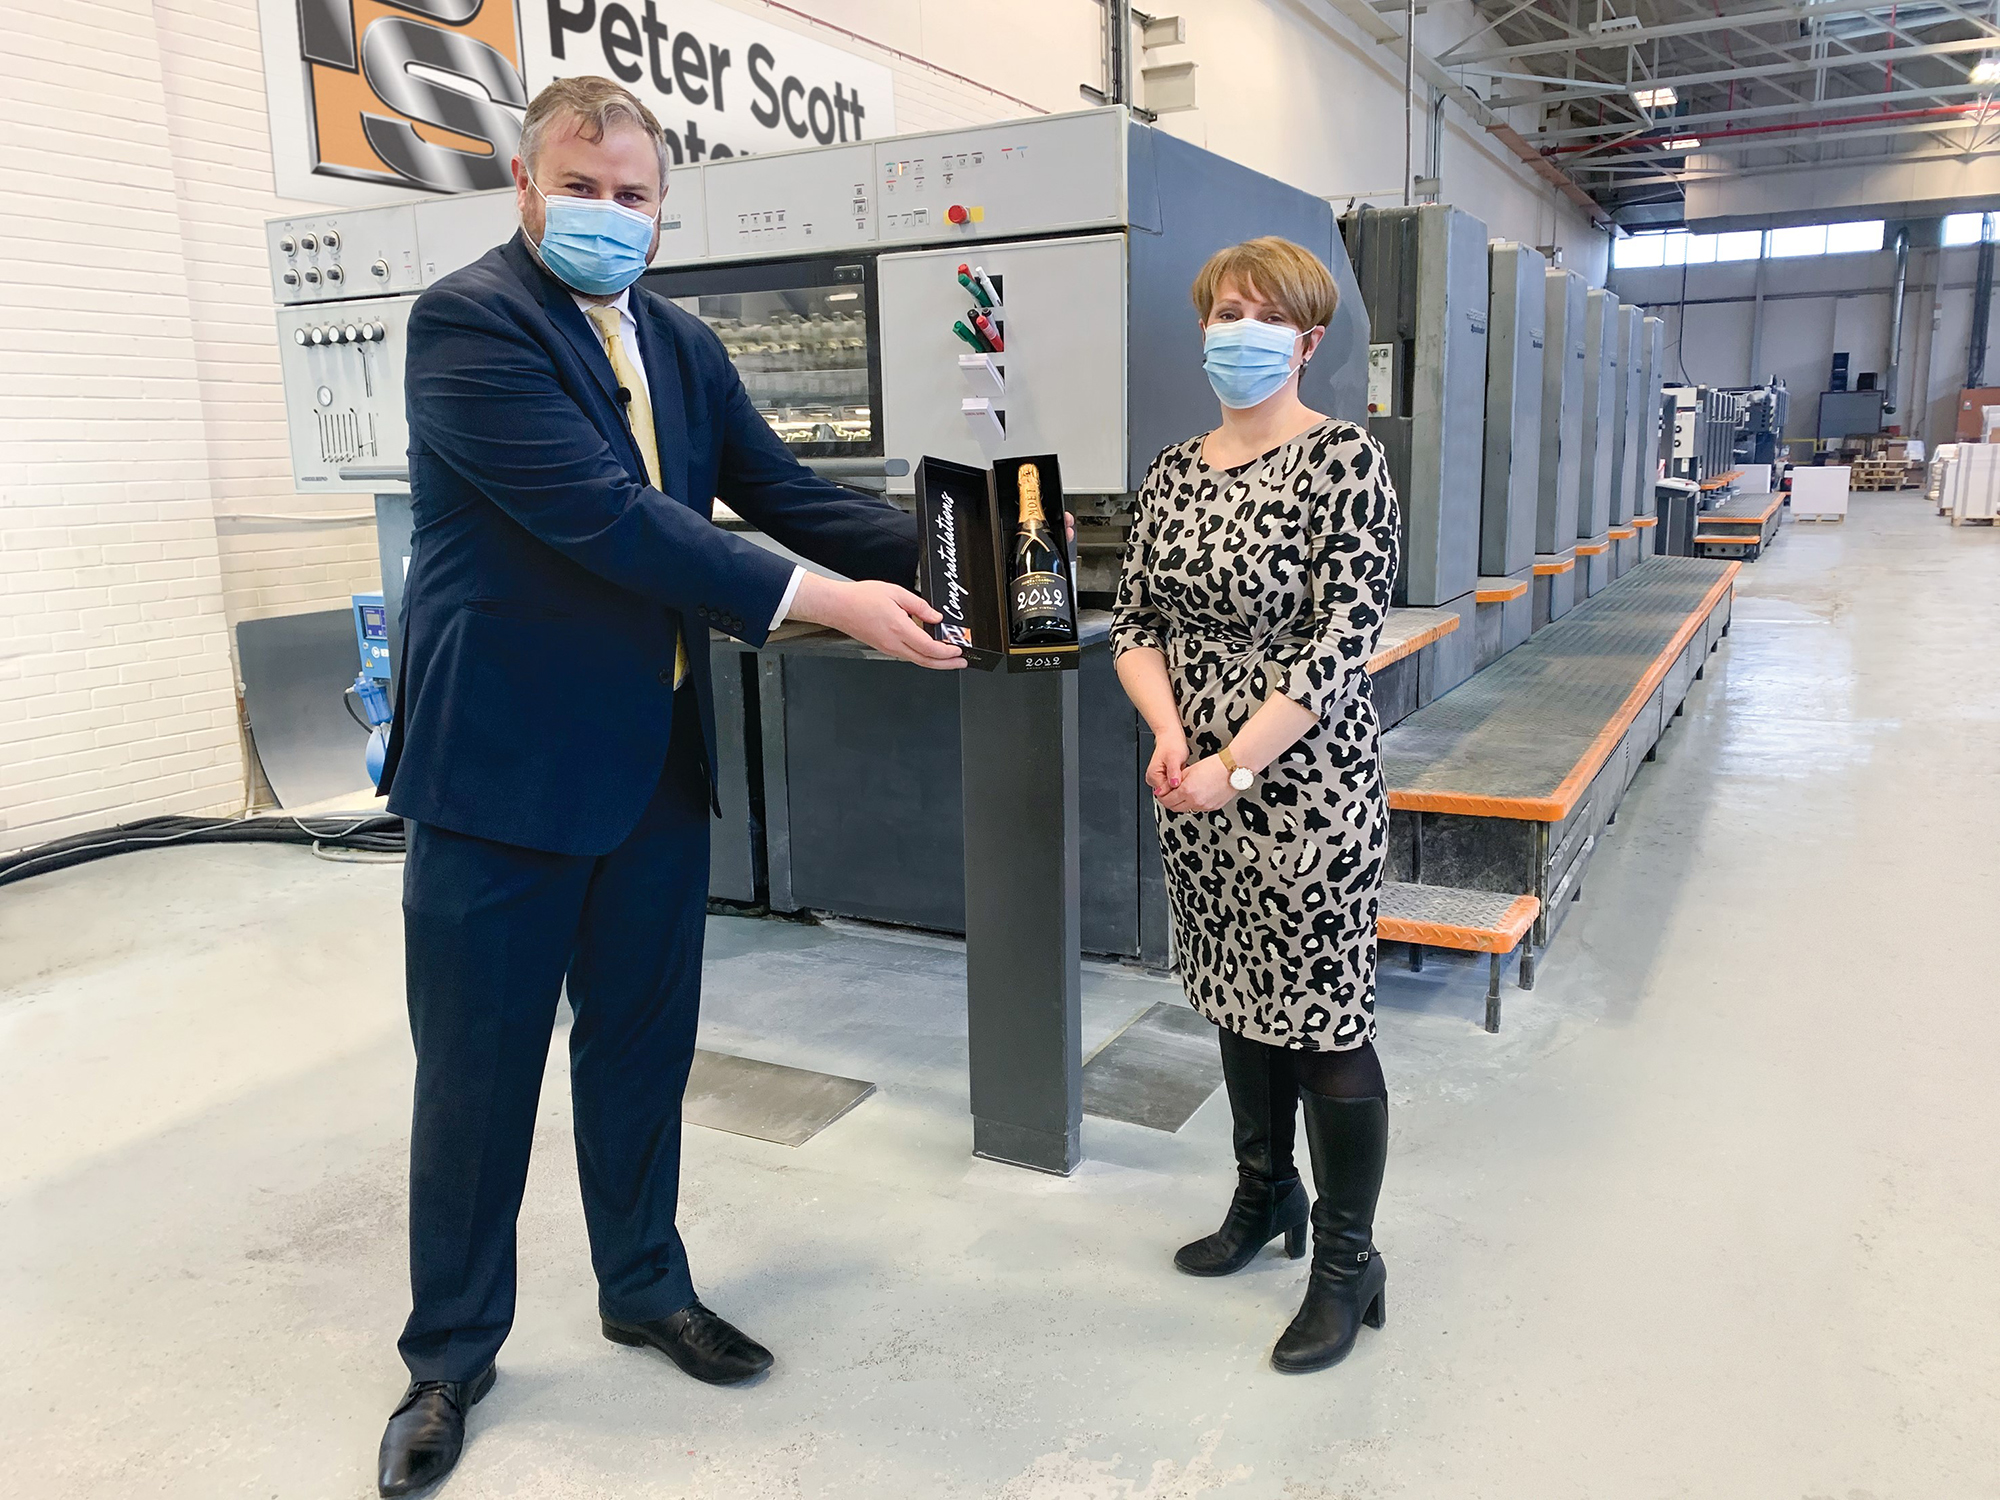 Joanne Hindley promoted to Managing Director of Peter Scott Printers, in surprise ceremony with MP